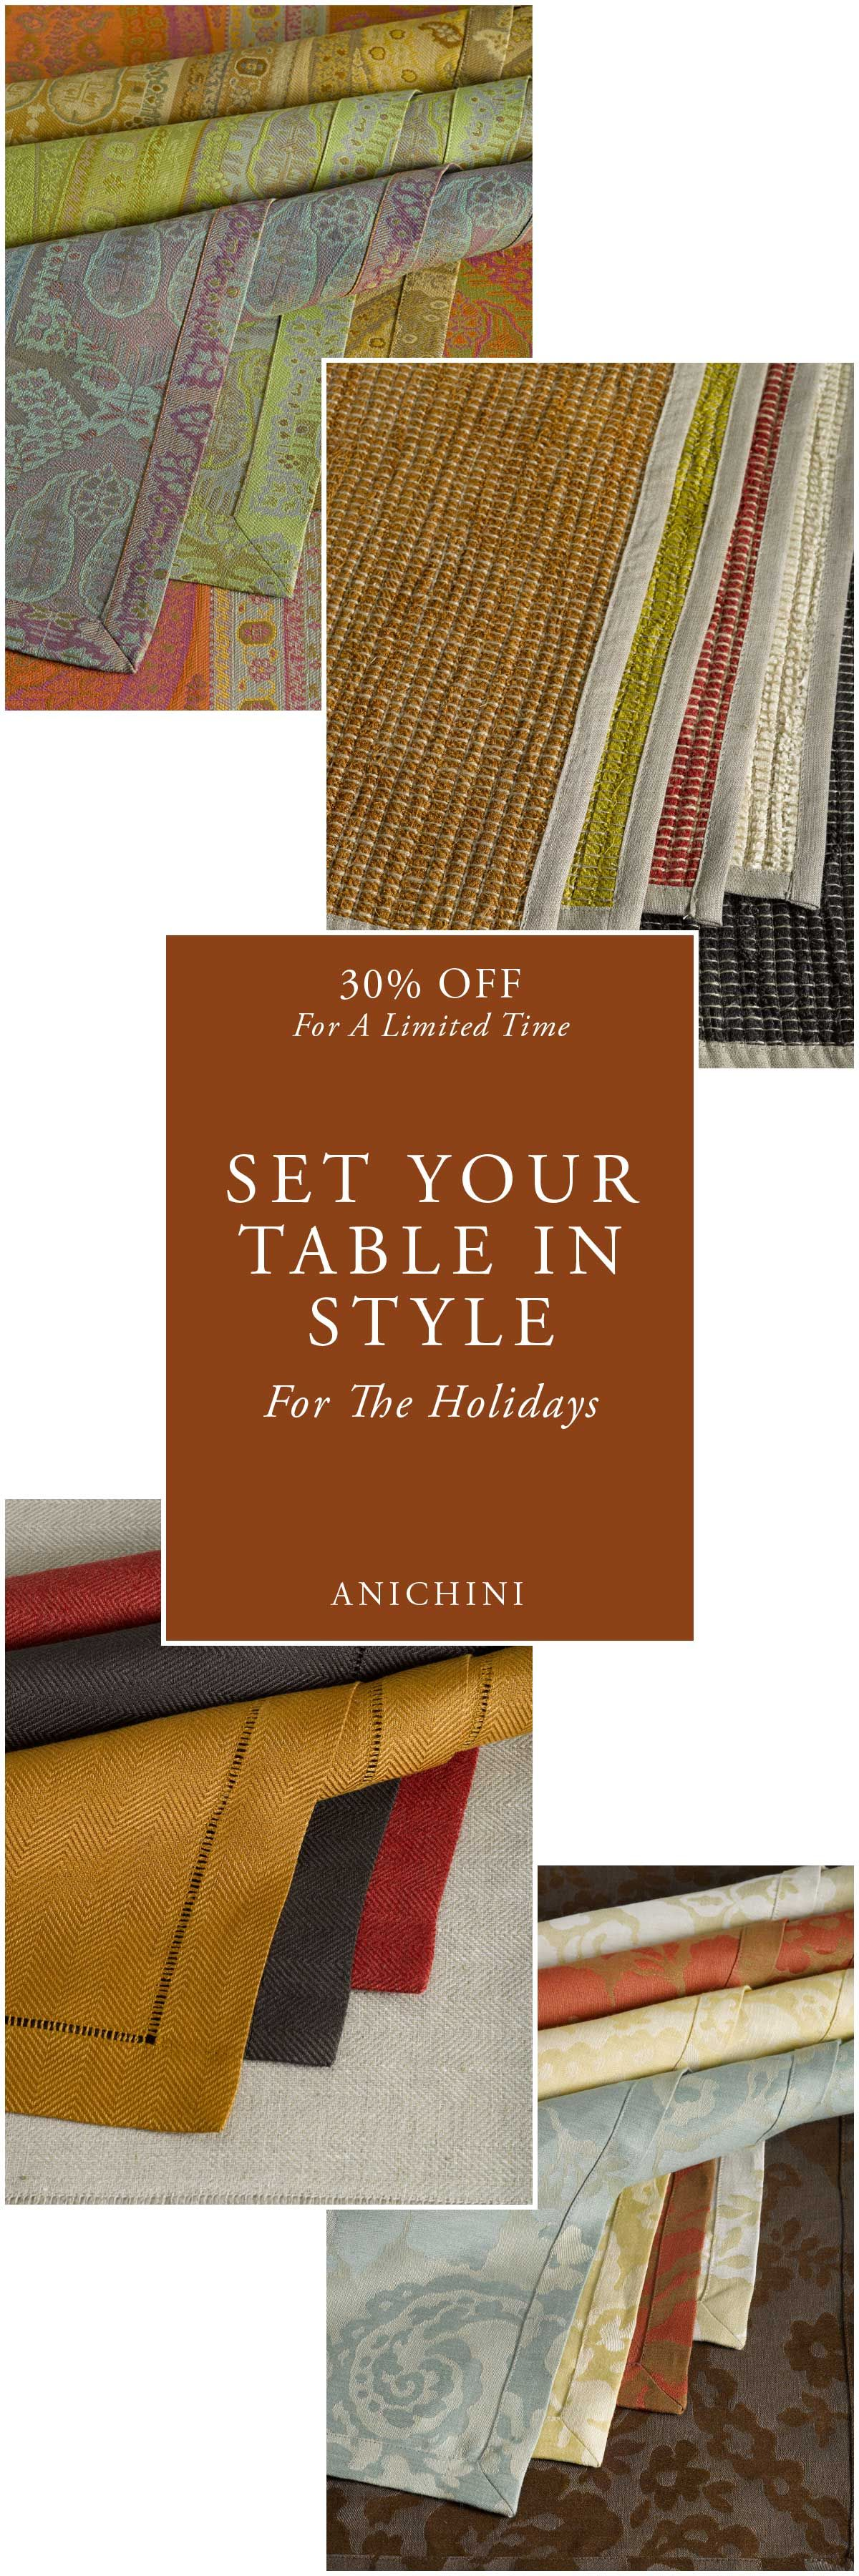 Set Your Holiday Table In Style With These Favorite Fall Table Linens For a limited time save 30% OFF all of our table linen collections. Our collection is comprised of the finest rustic linen, rich jacquard, and formal sateen table linens from around the world.